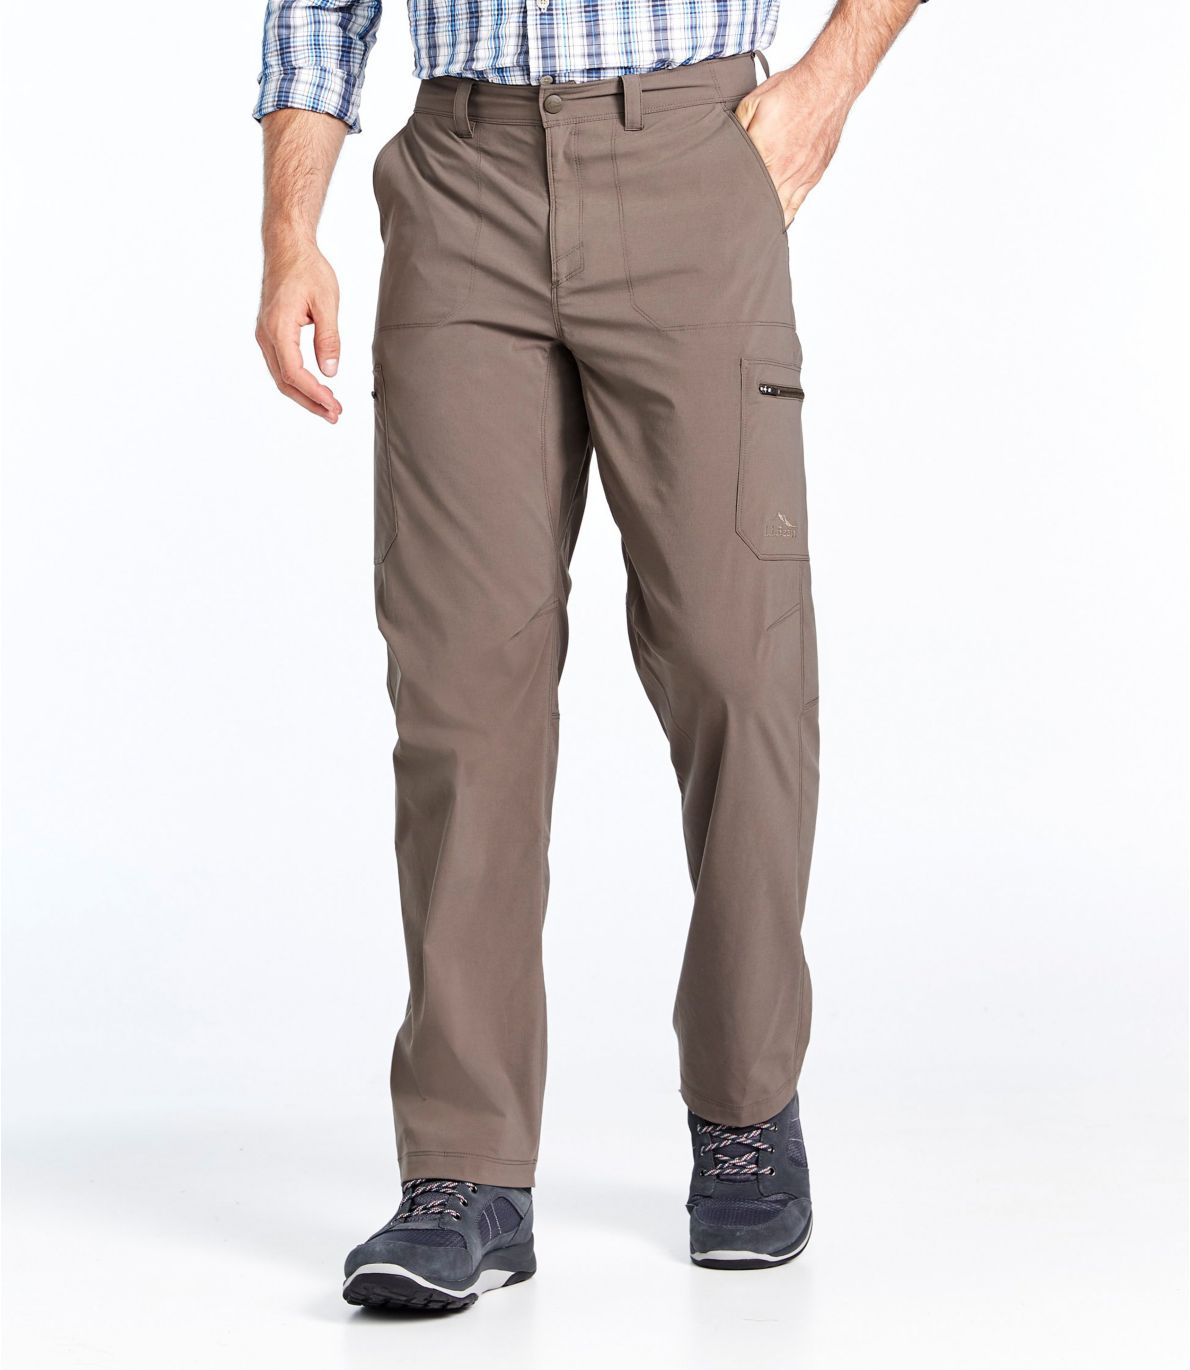 Men's Water-Resistant Cresta Hiking Pants, Standard Fit